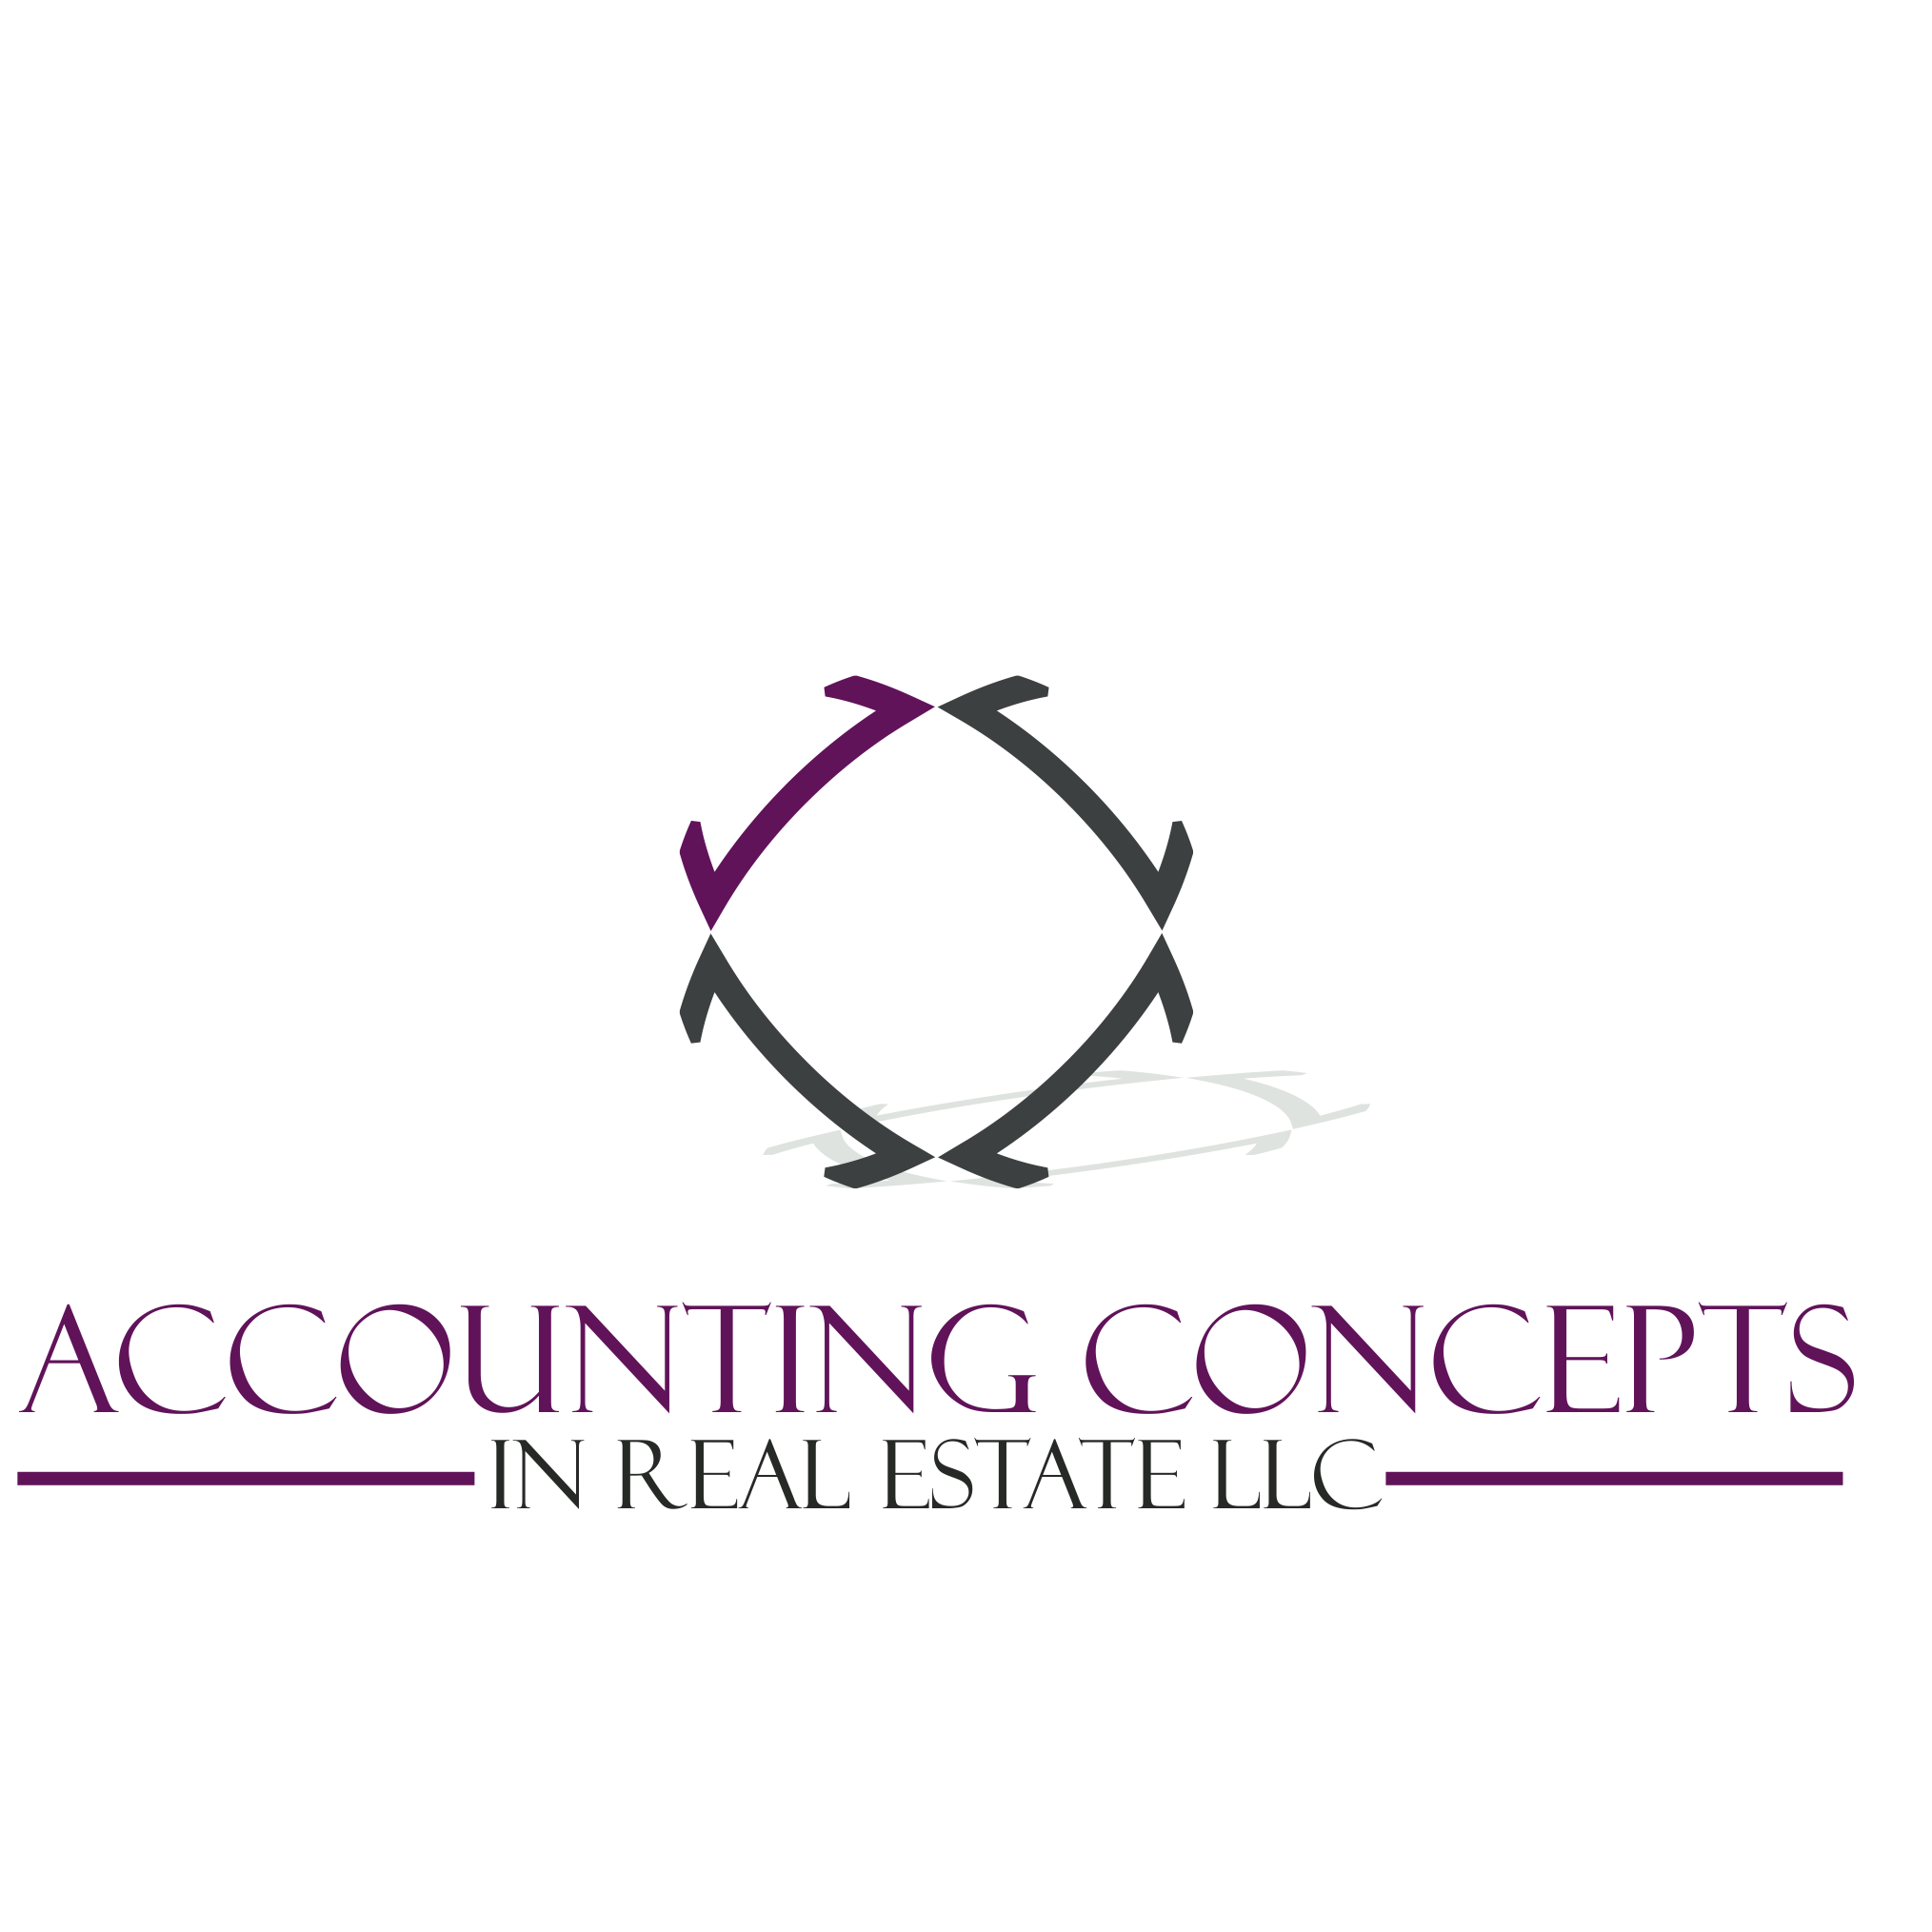 Accounting concepts in real estate llc centennial for Concept homes llc